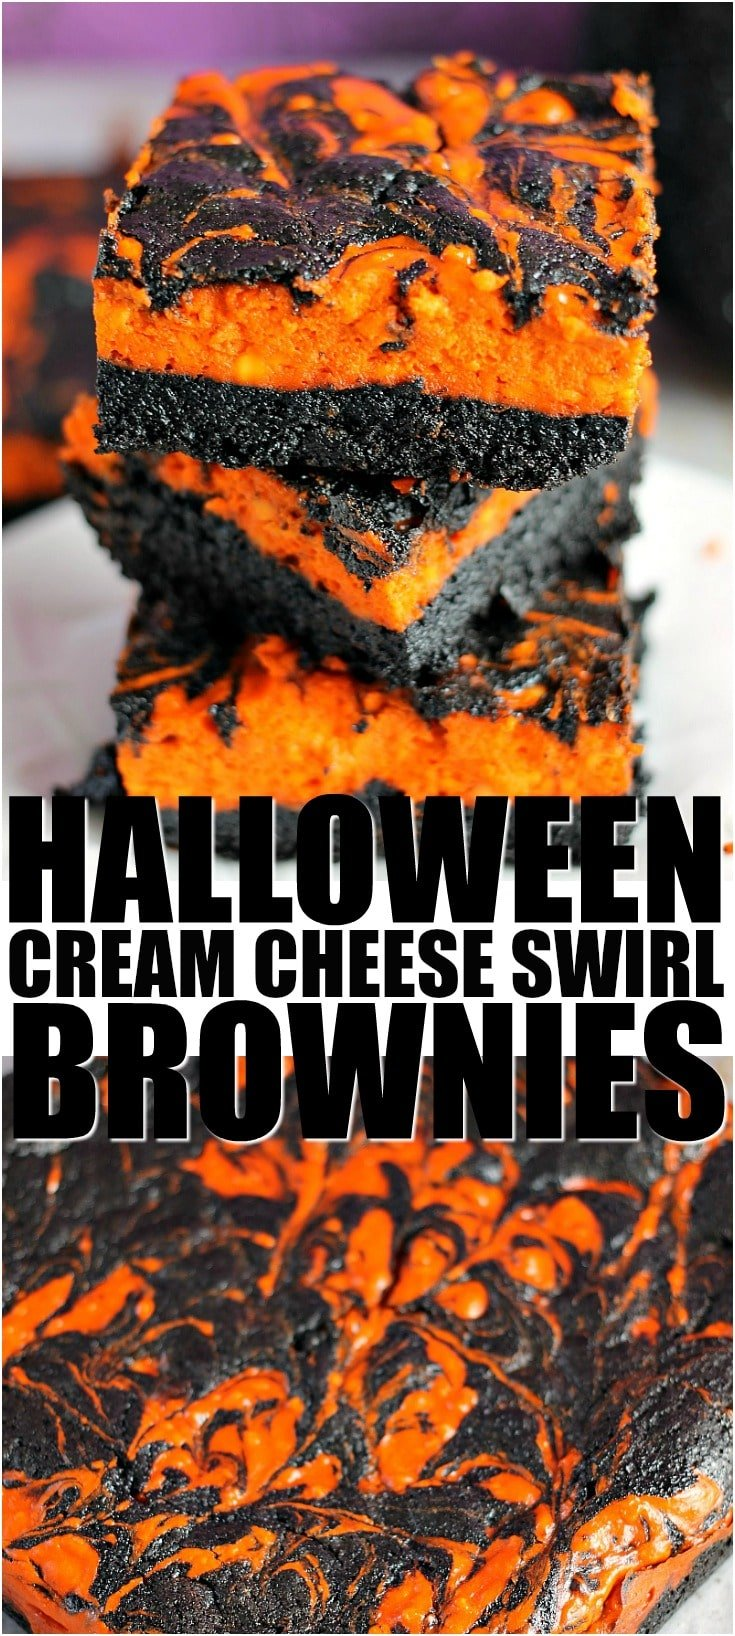 Halloween Cream Cheese Swirl Brownies have a layer of rich, dark chocolate brownie topped with a layer of orange cheesecake then swirled together for a spooky treat. | Persnickety Plates #halloween #halloweenbrownies #halloweendessert #cheesecake #brownies